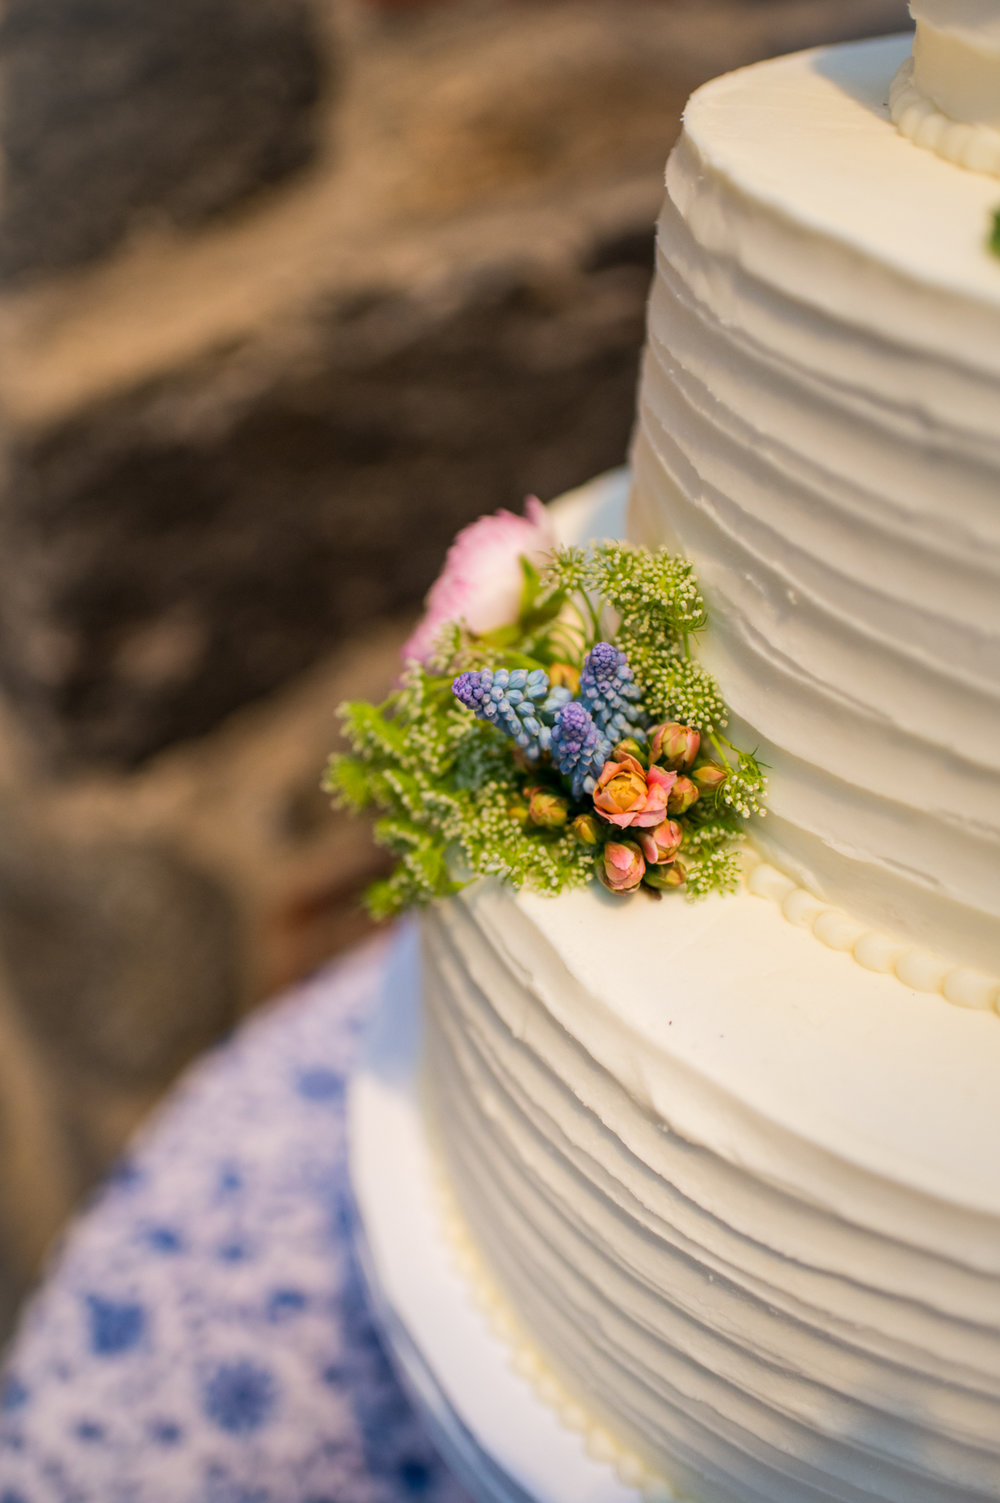 wedding cake with flowers.jpg